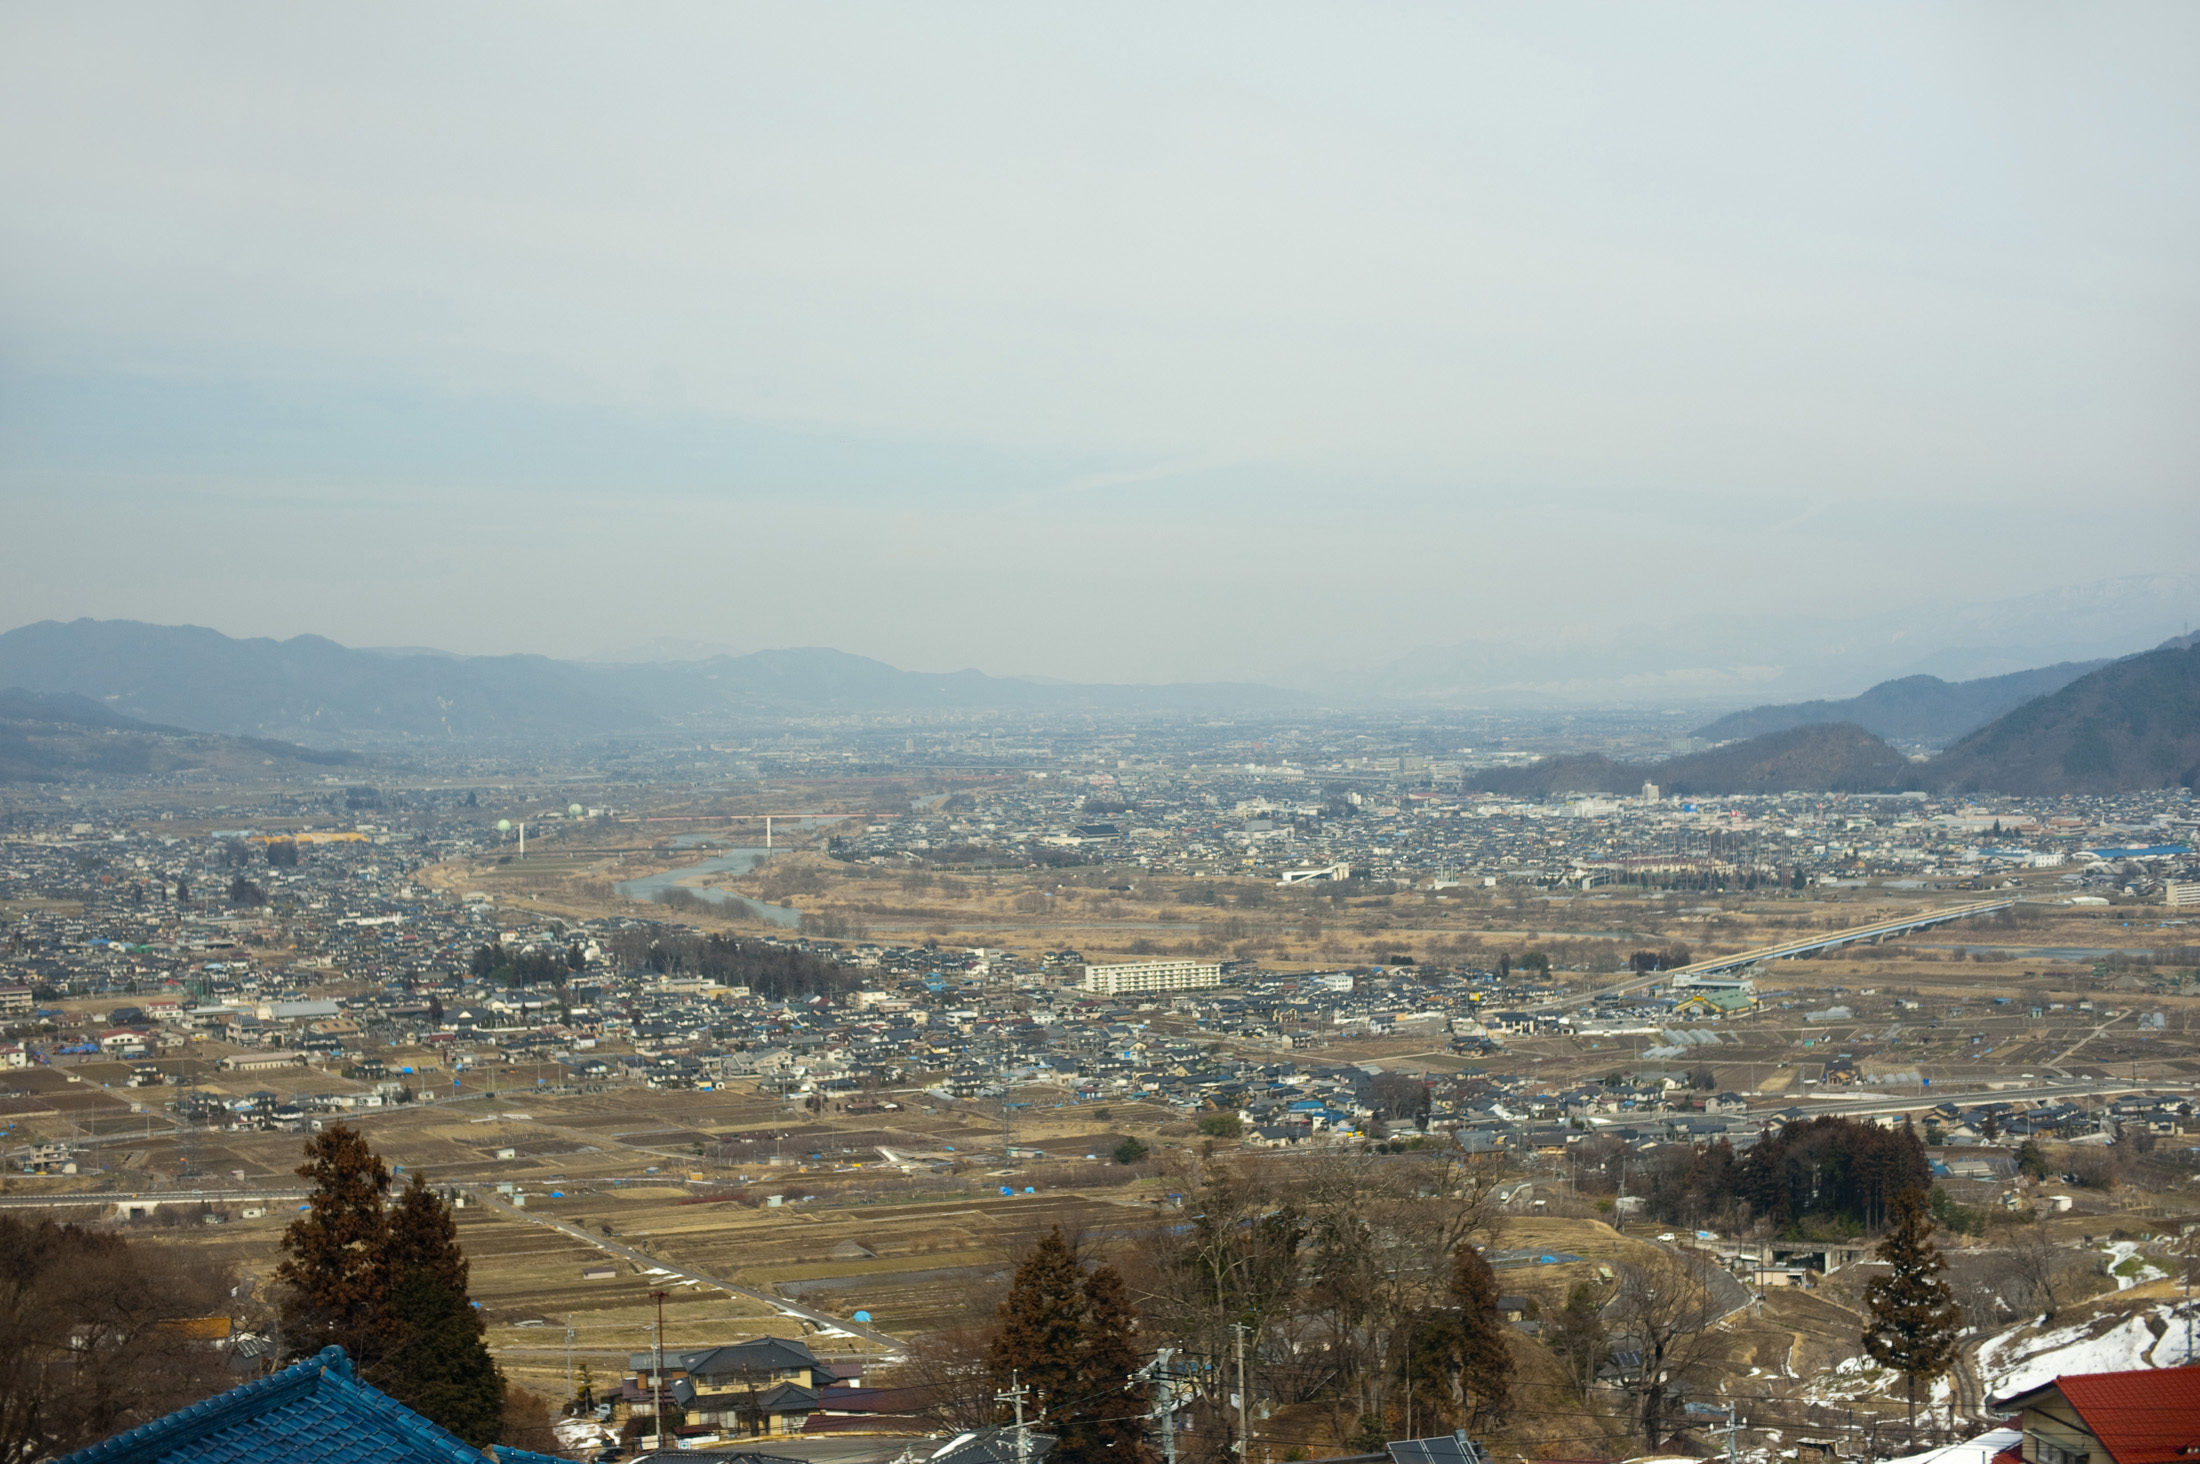 A view of the city of nagano and surrounding mountains, Japan